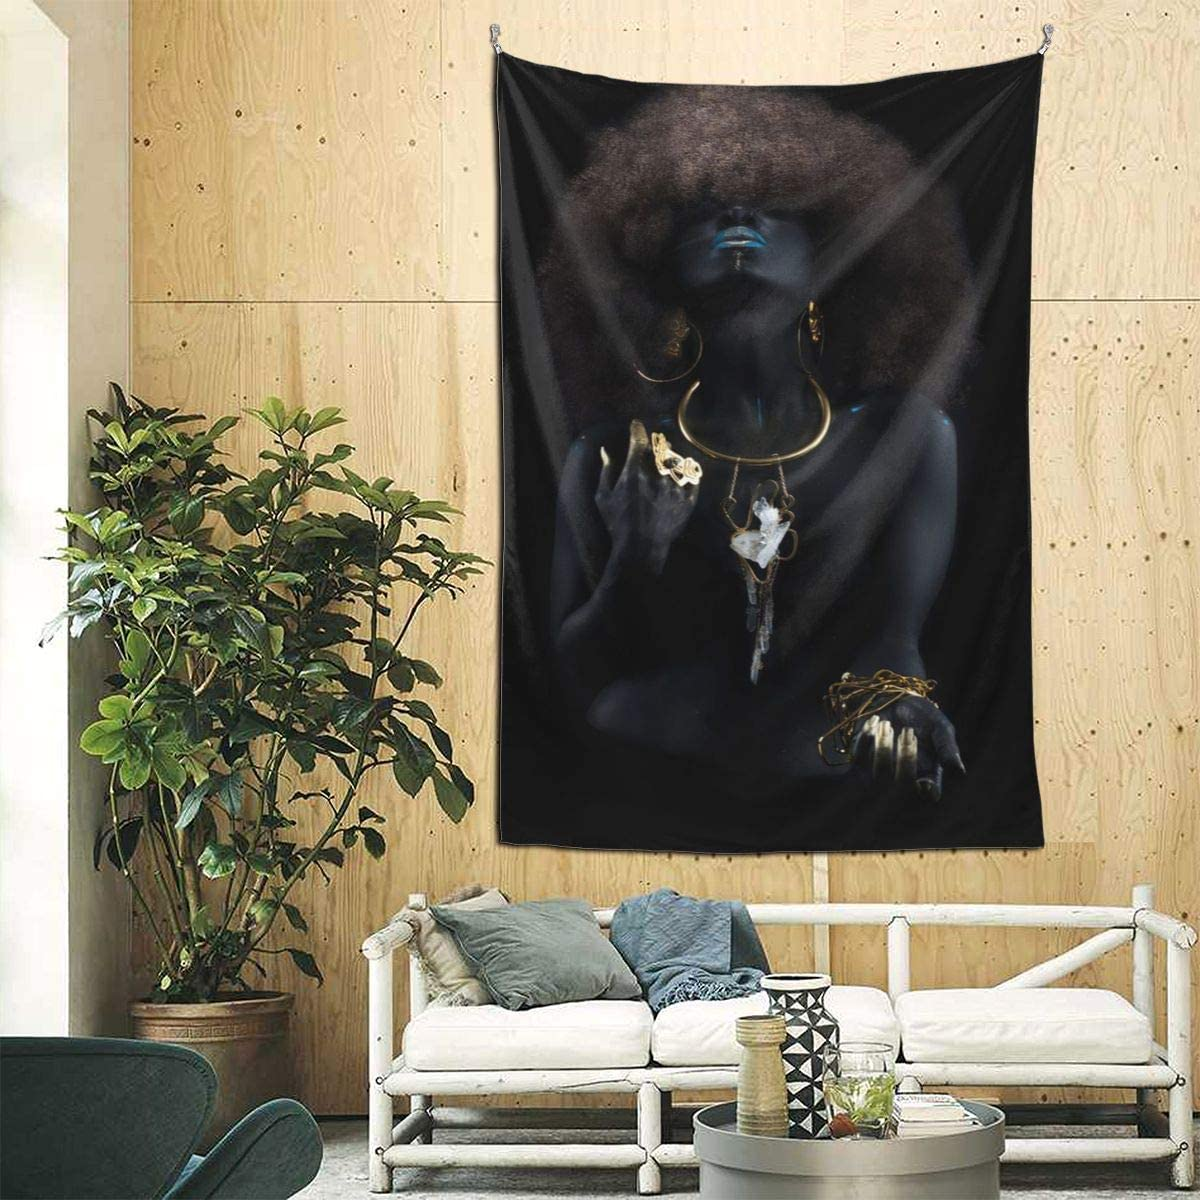 Afro Black Art Tapestry Wall Hanging Beautiful Gold Black Woman Tapestries Wall Art Hippie Bedroom Living Room Dorm Wall Decor 90×60 Inch